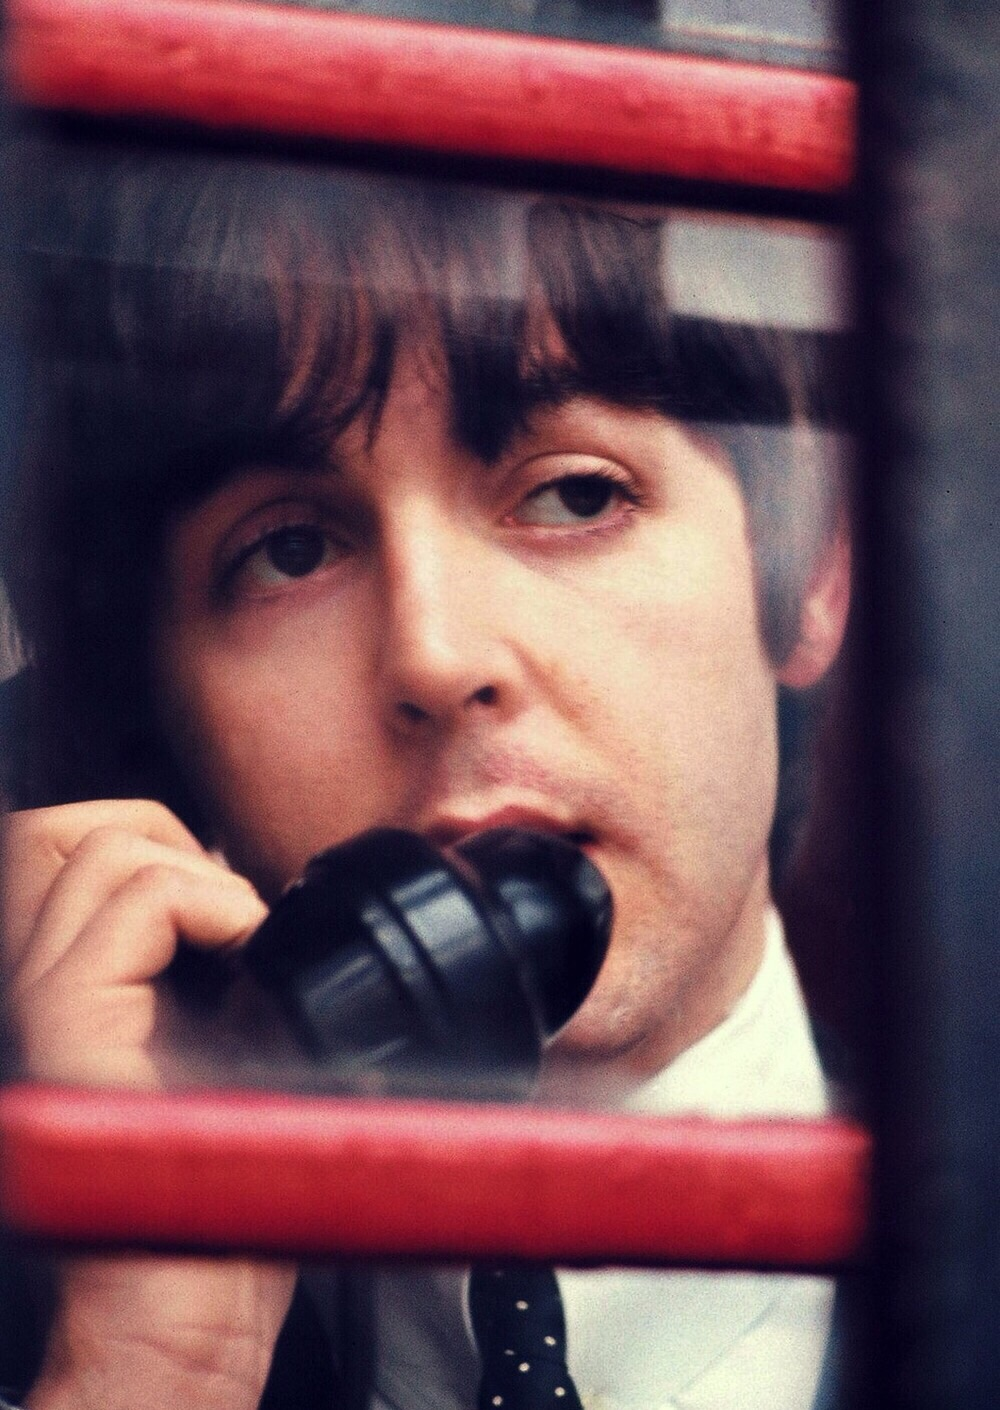 Paul McCartney on the phone, circa 1965.